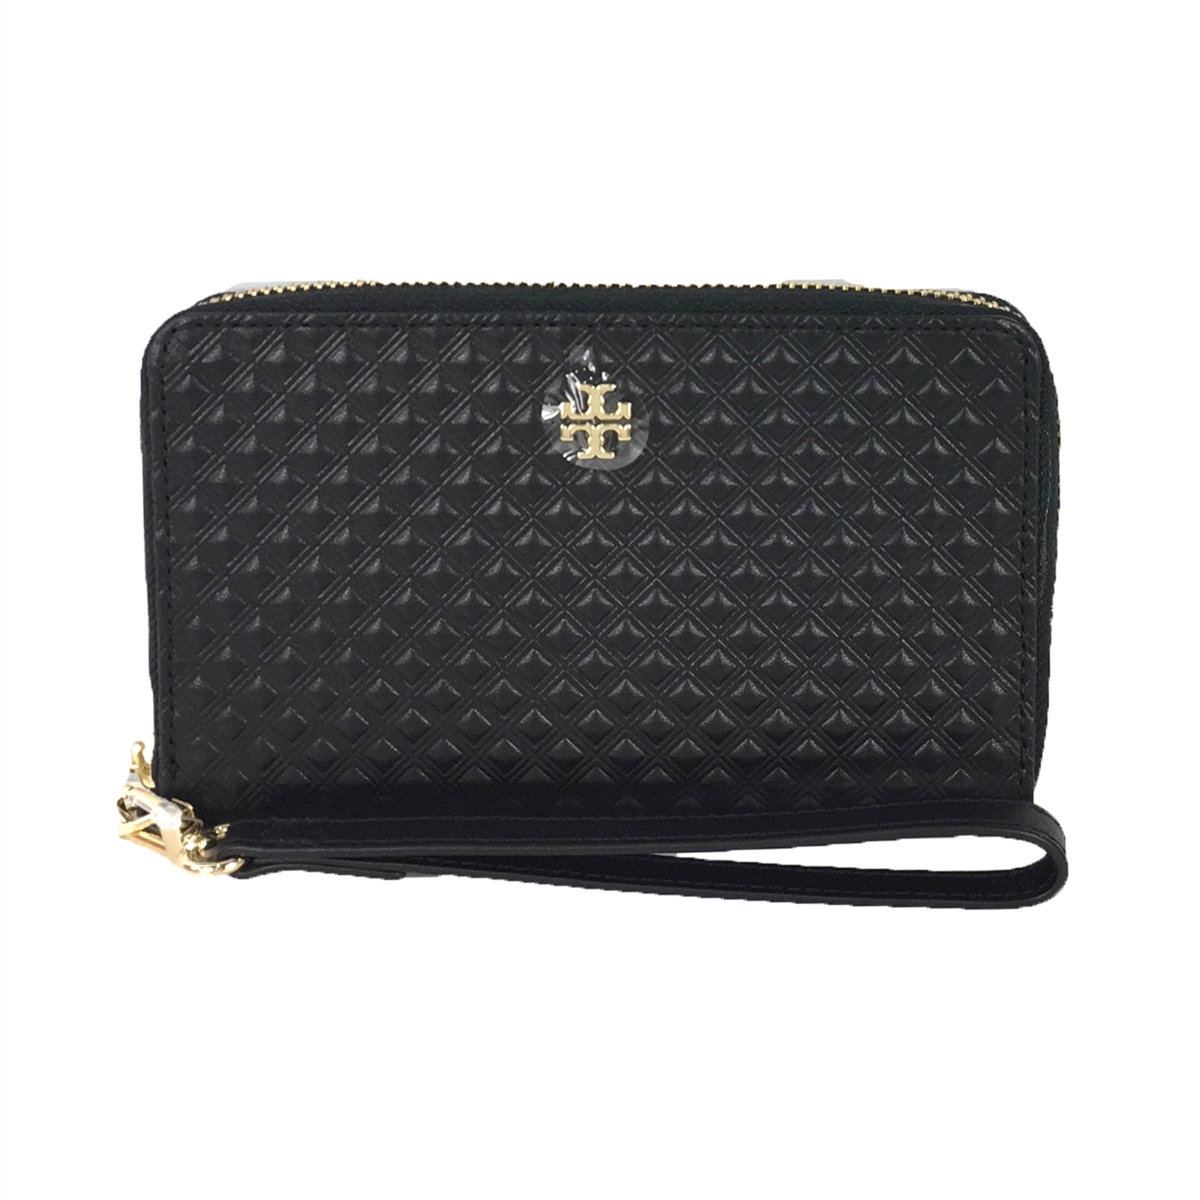 Tory Burch at The Bagtique